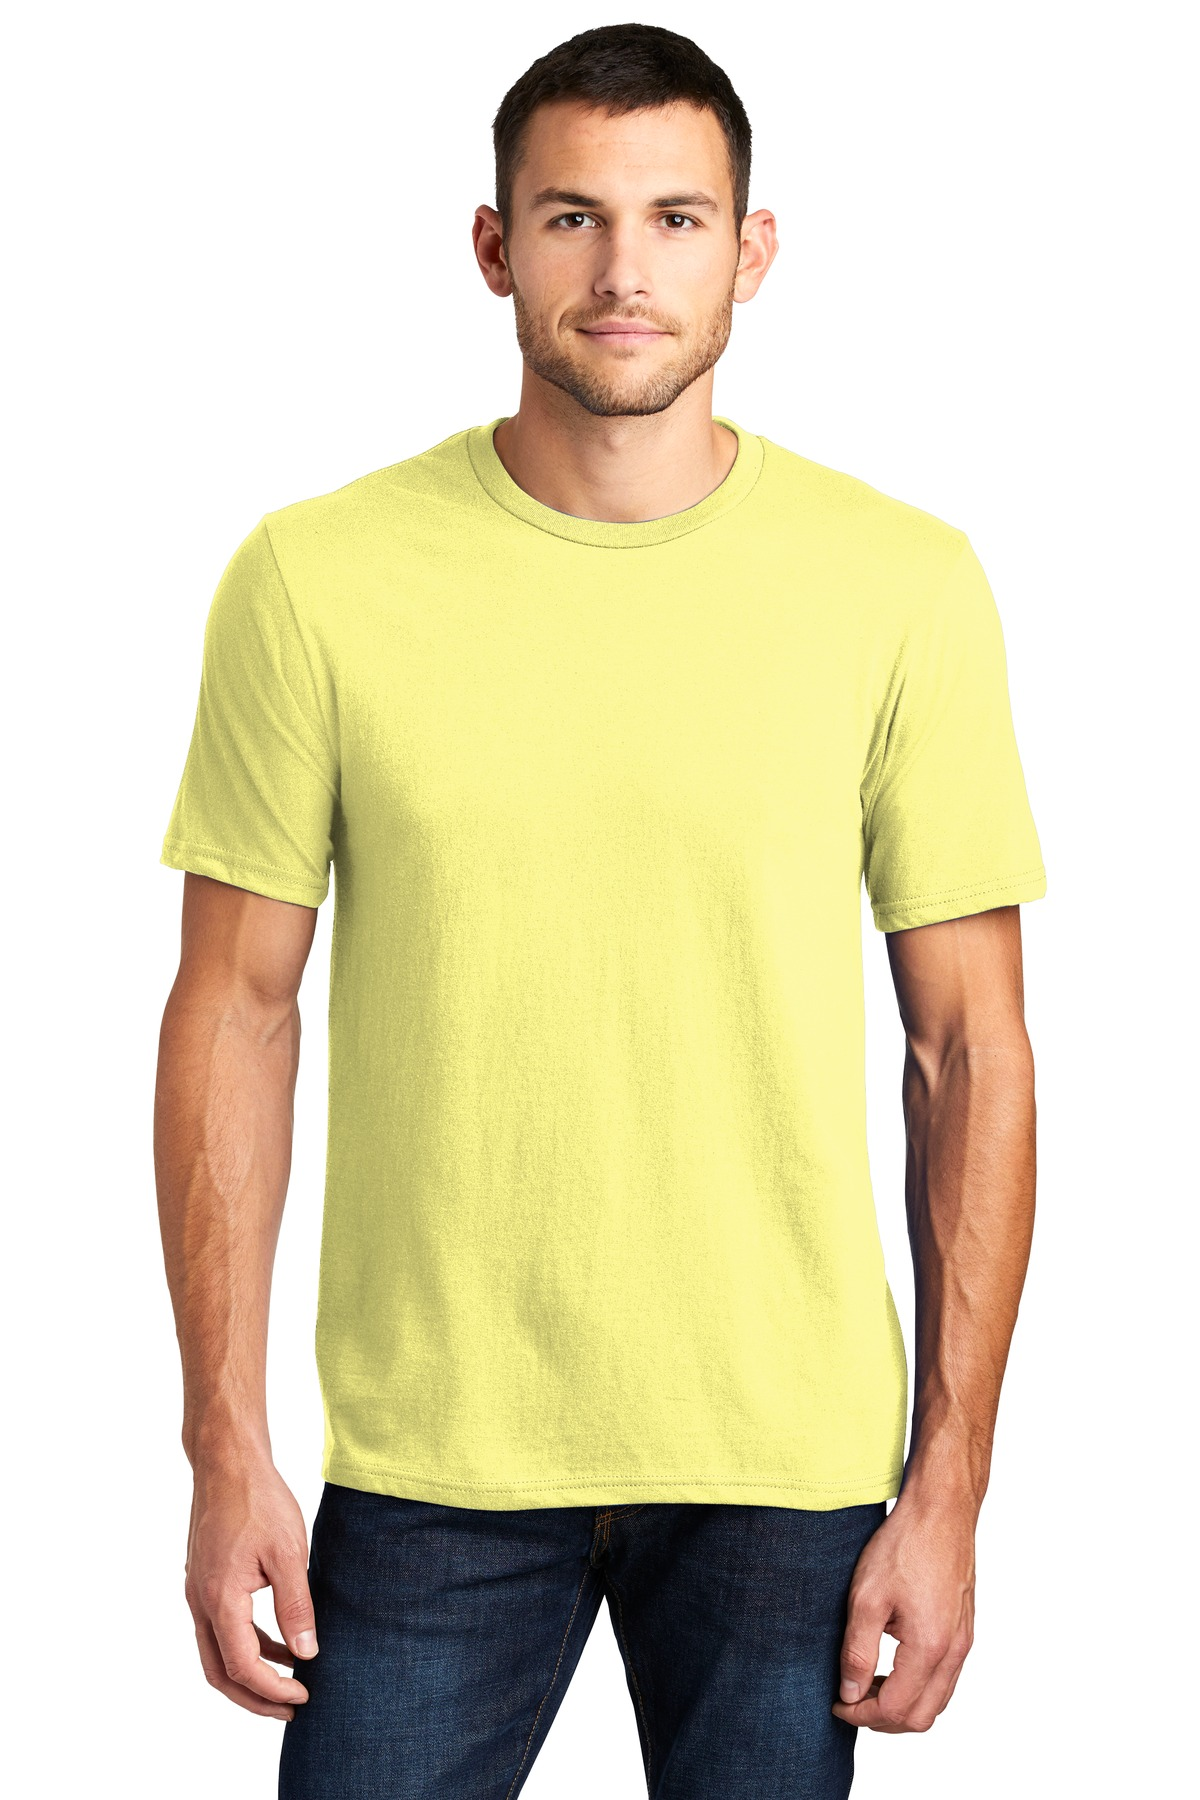 District ®  Very Important Tee ® . DT6000 - Lemon Yellow